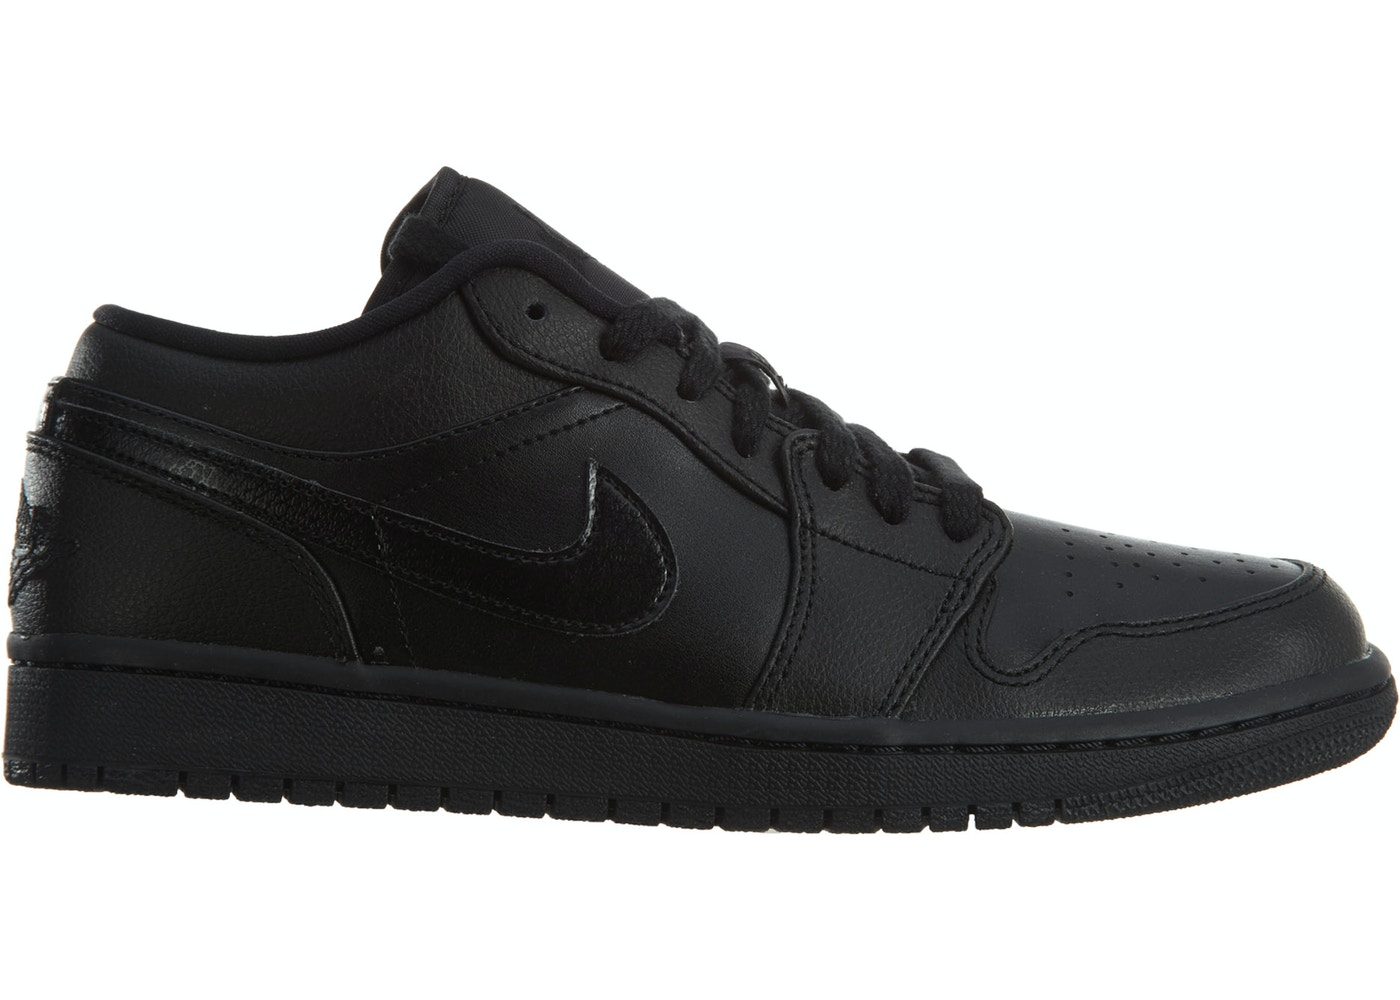 plus récent 30500 ac48c Jordan 1 Low Black Black Noir